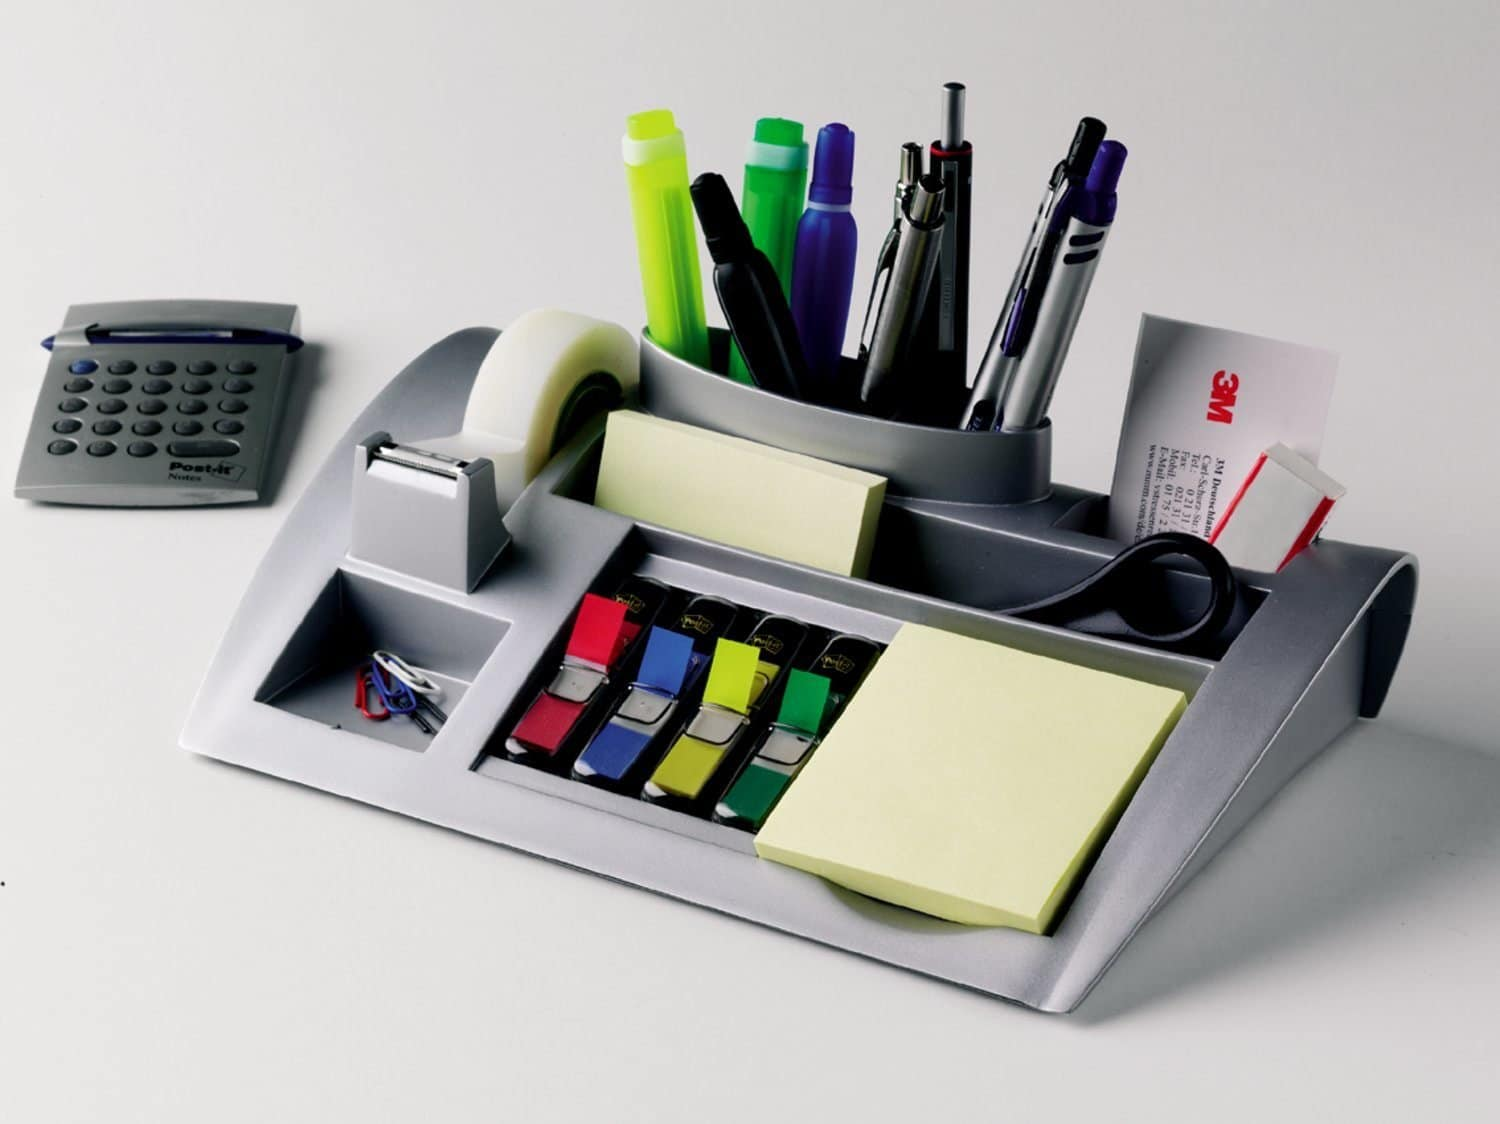 Keep your Desktop Clean with a Post-it Desktop Organizer